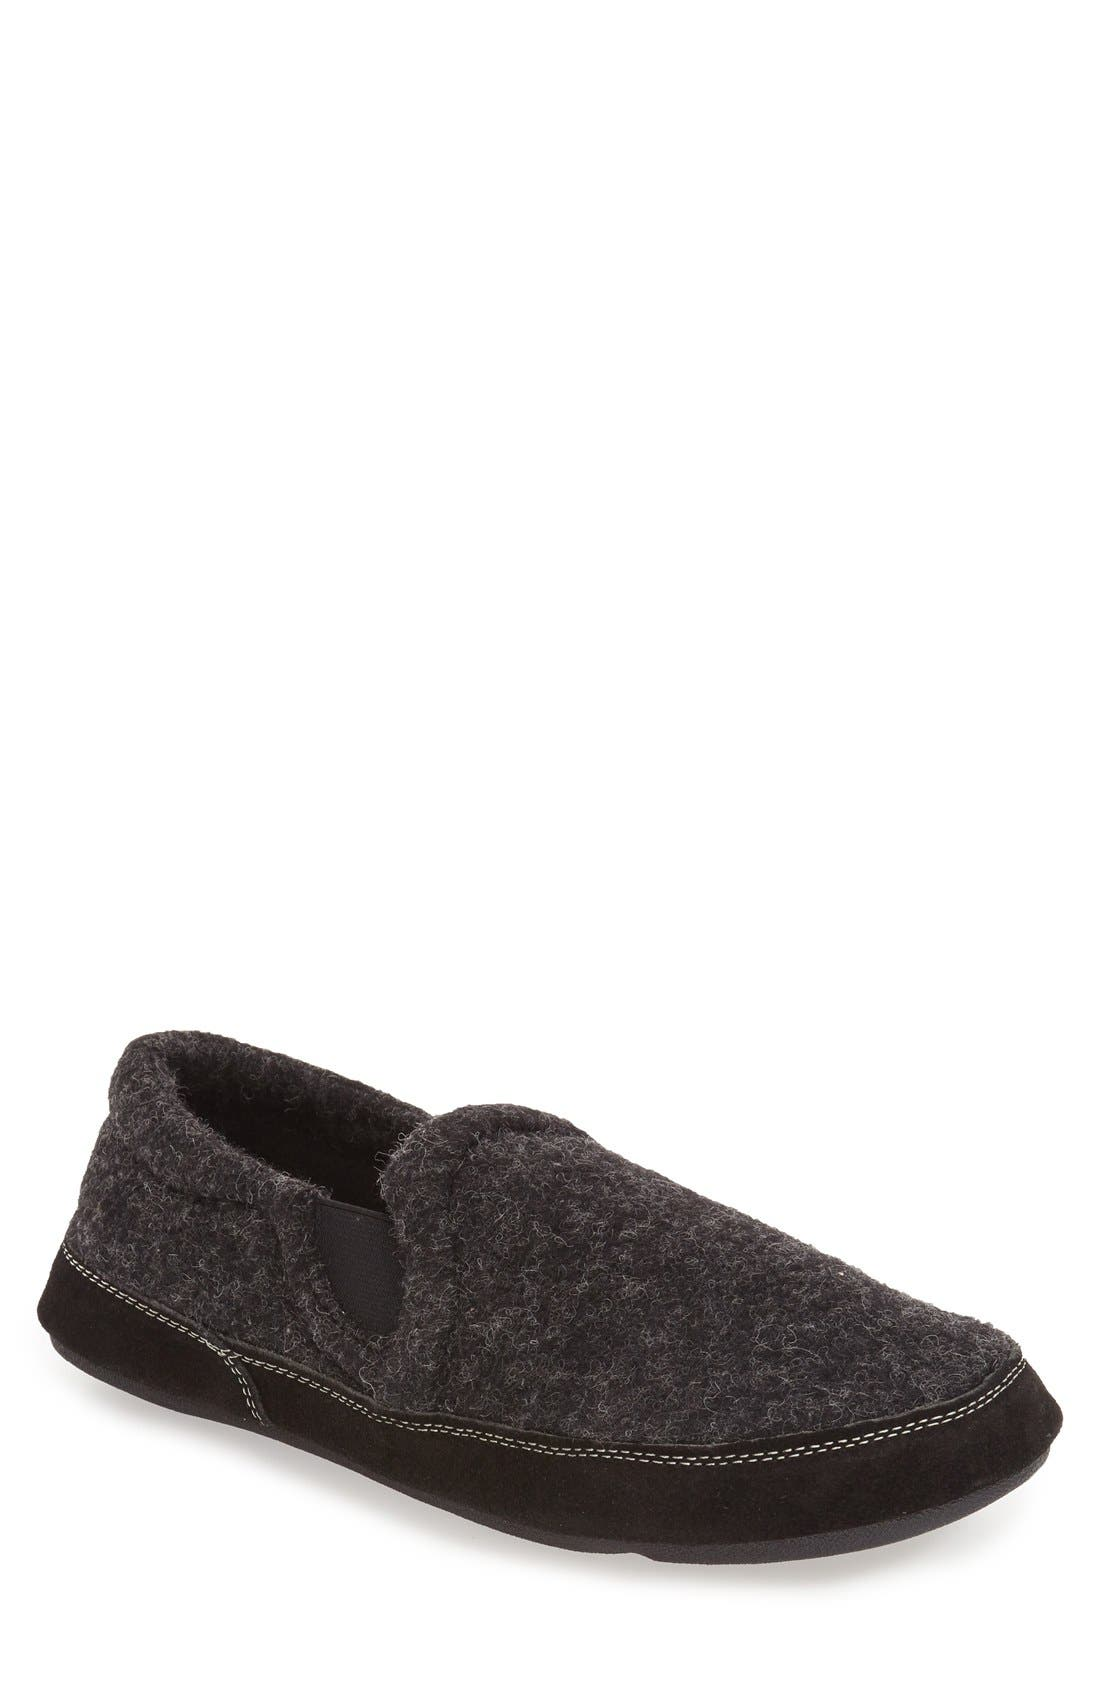 ACORN 'Fave' Slipper in Black